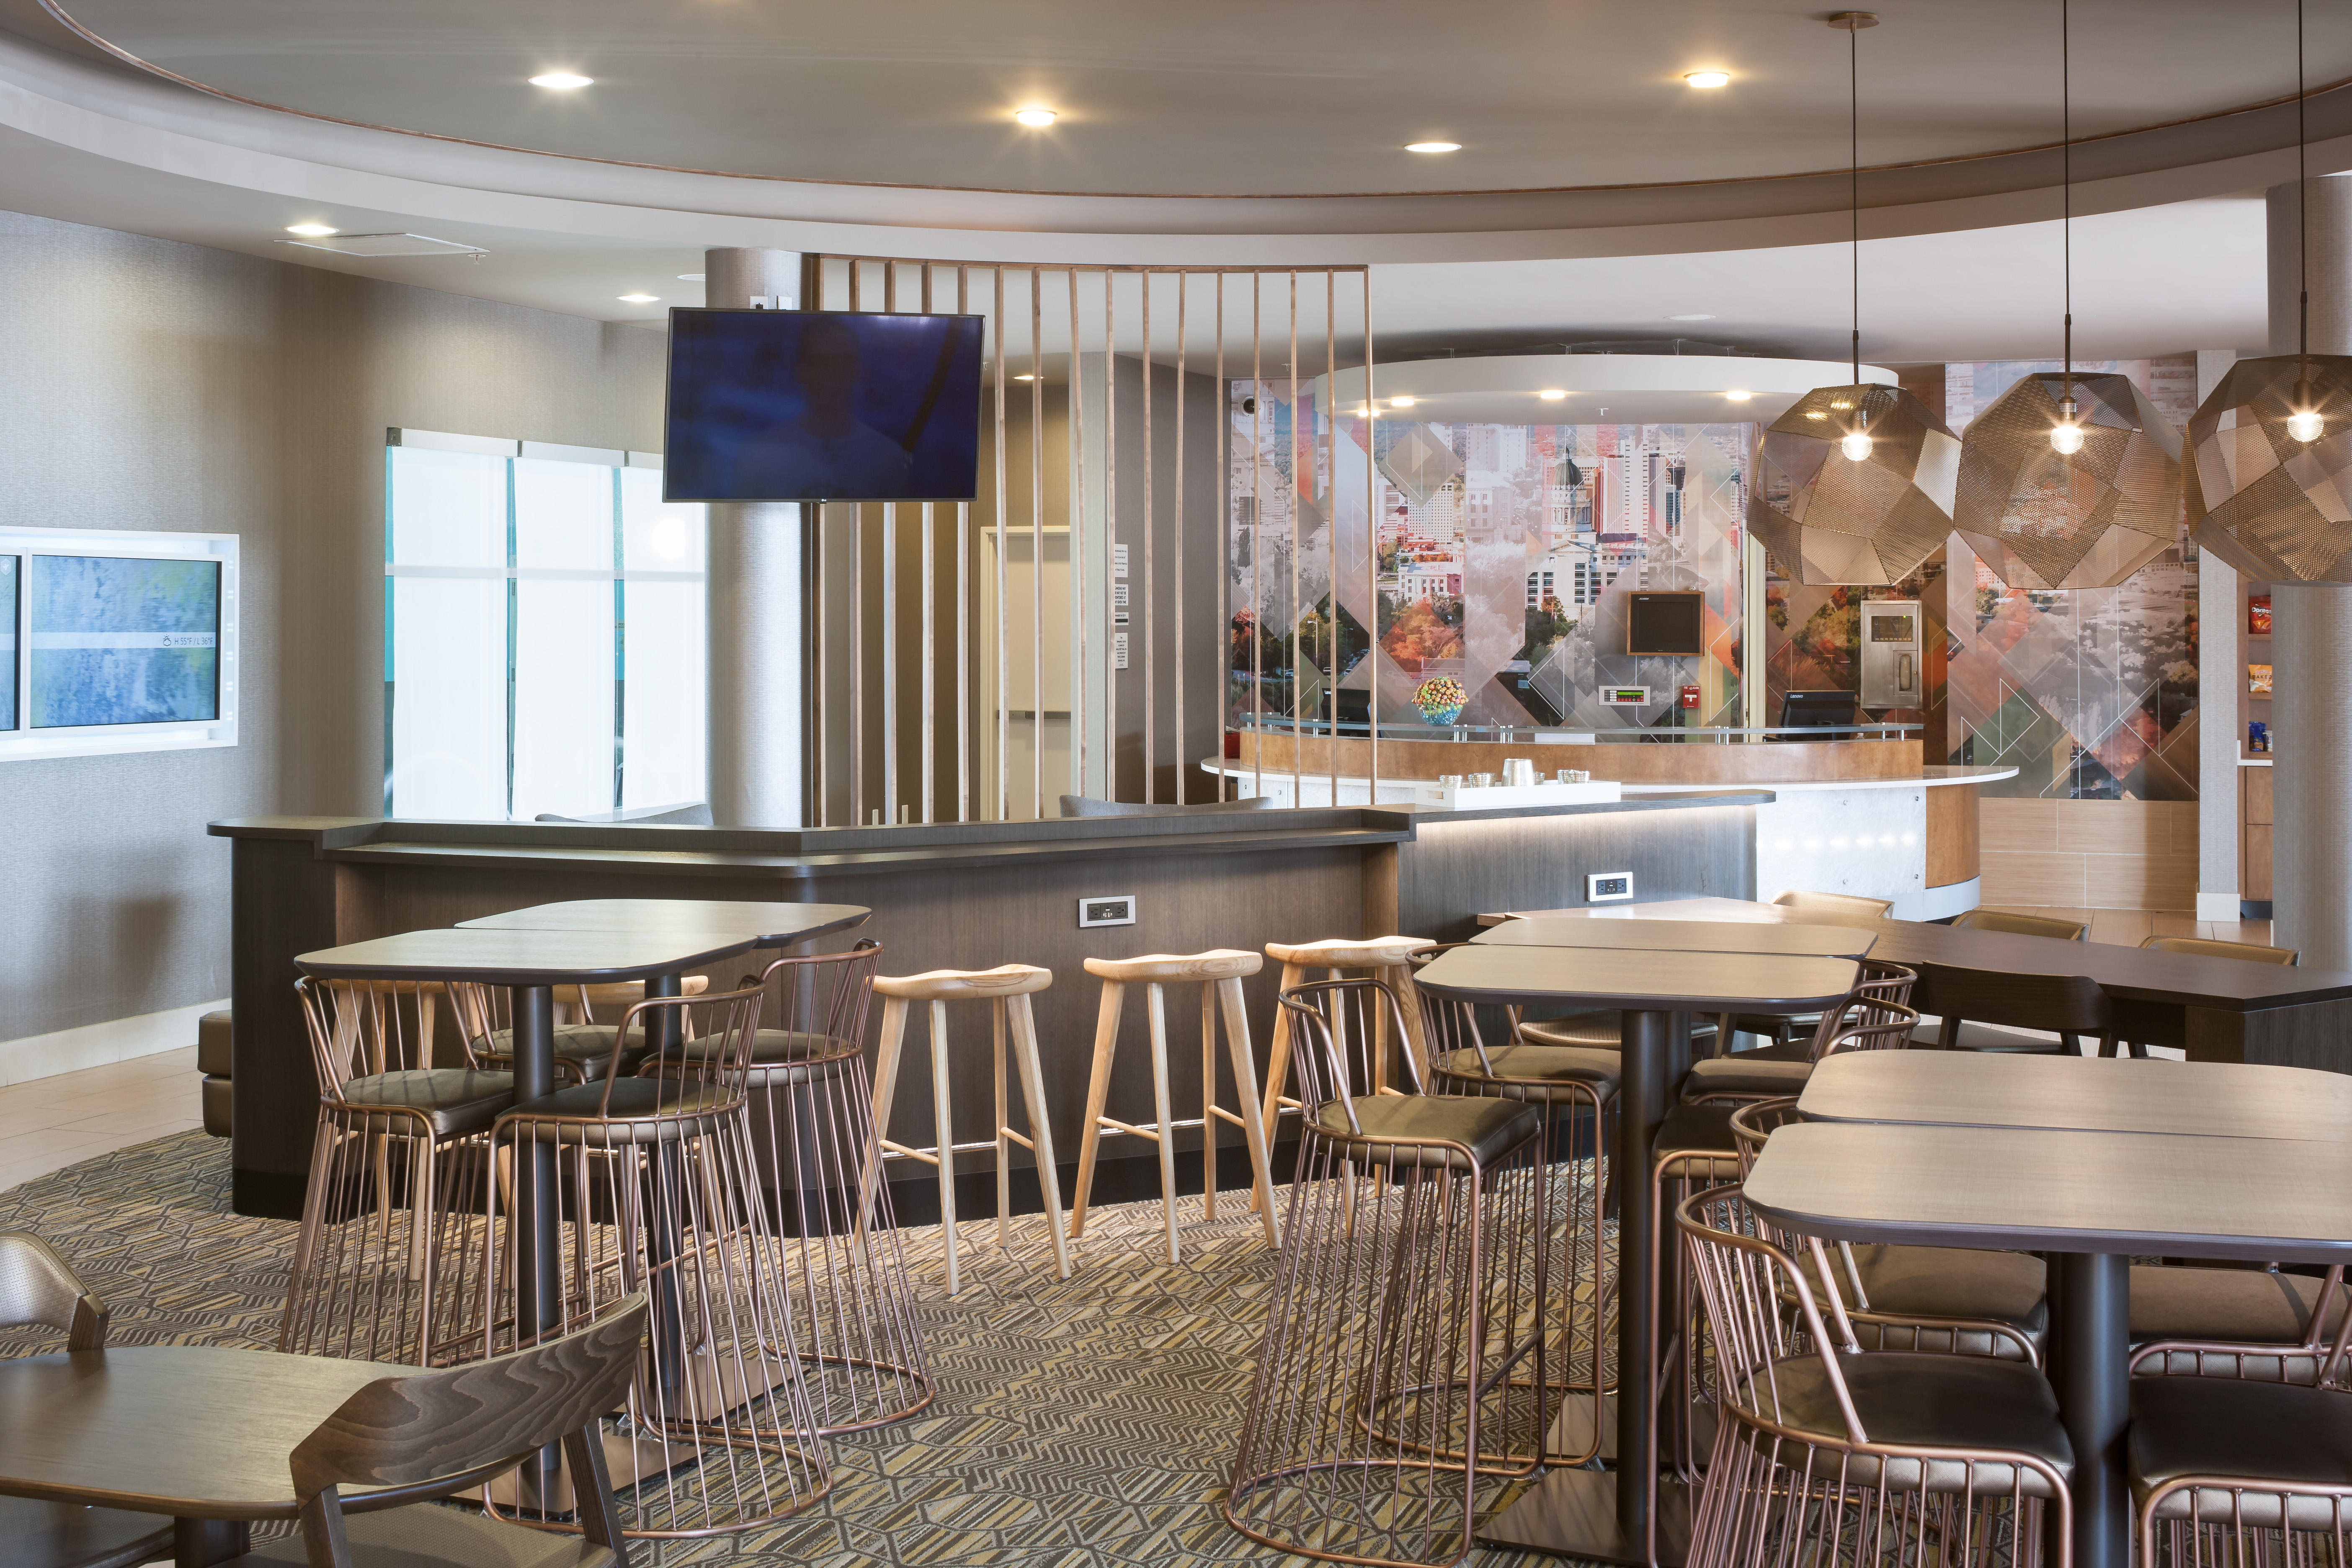 SpringHill Suites by Marriott Salt Lake City Airport image 11